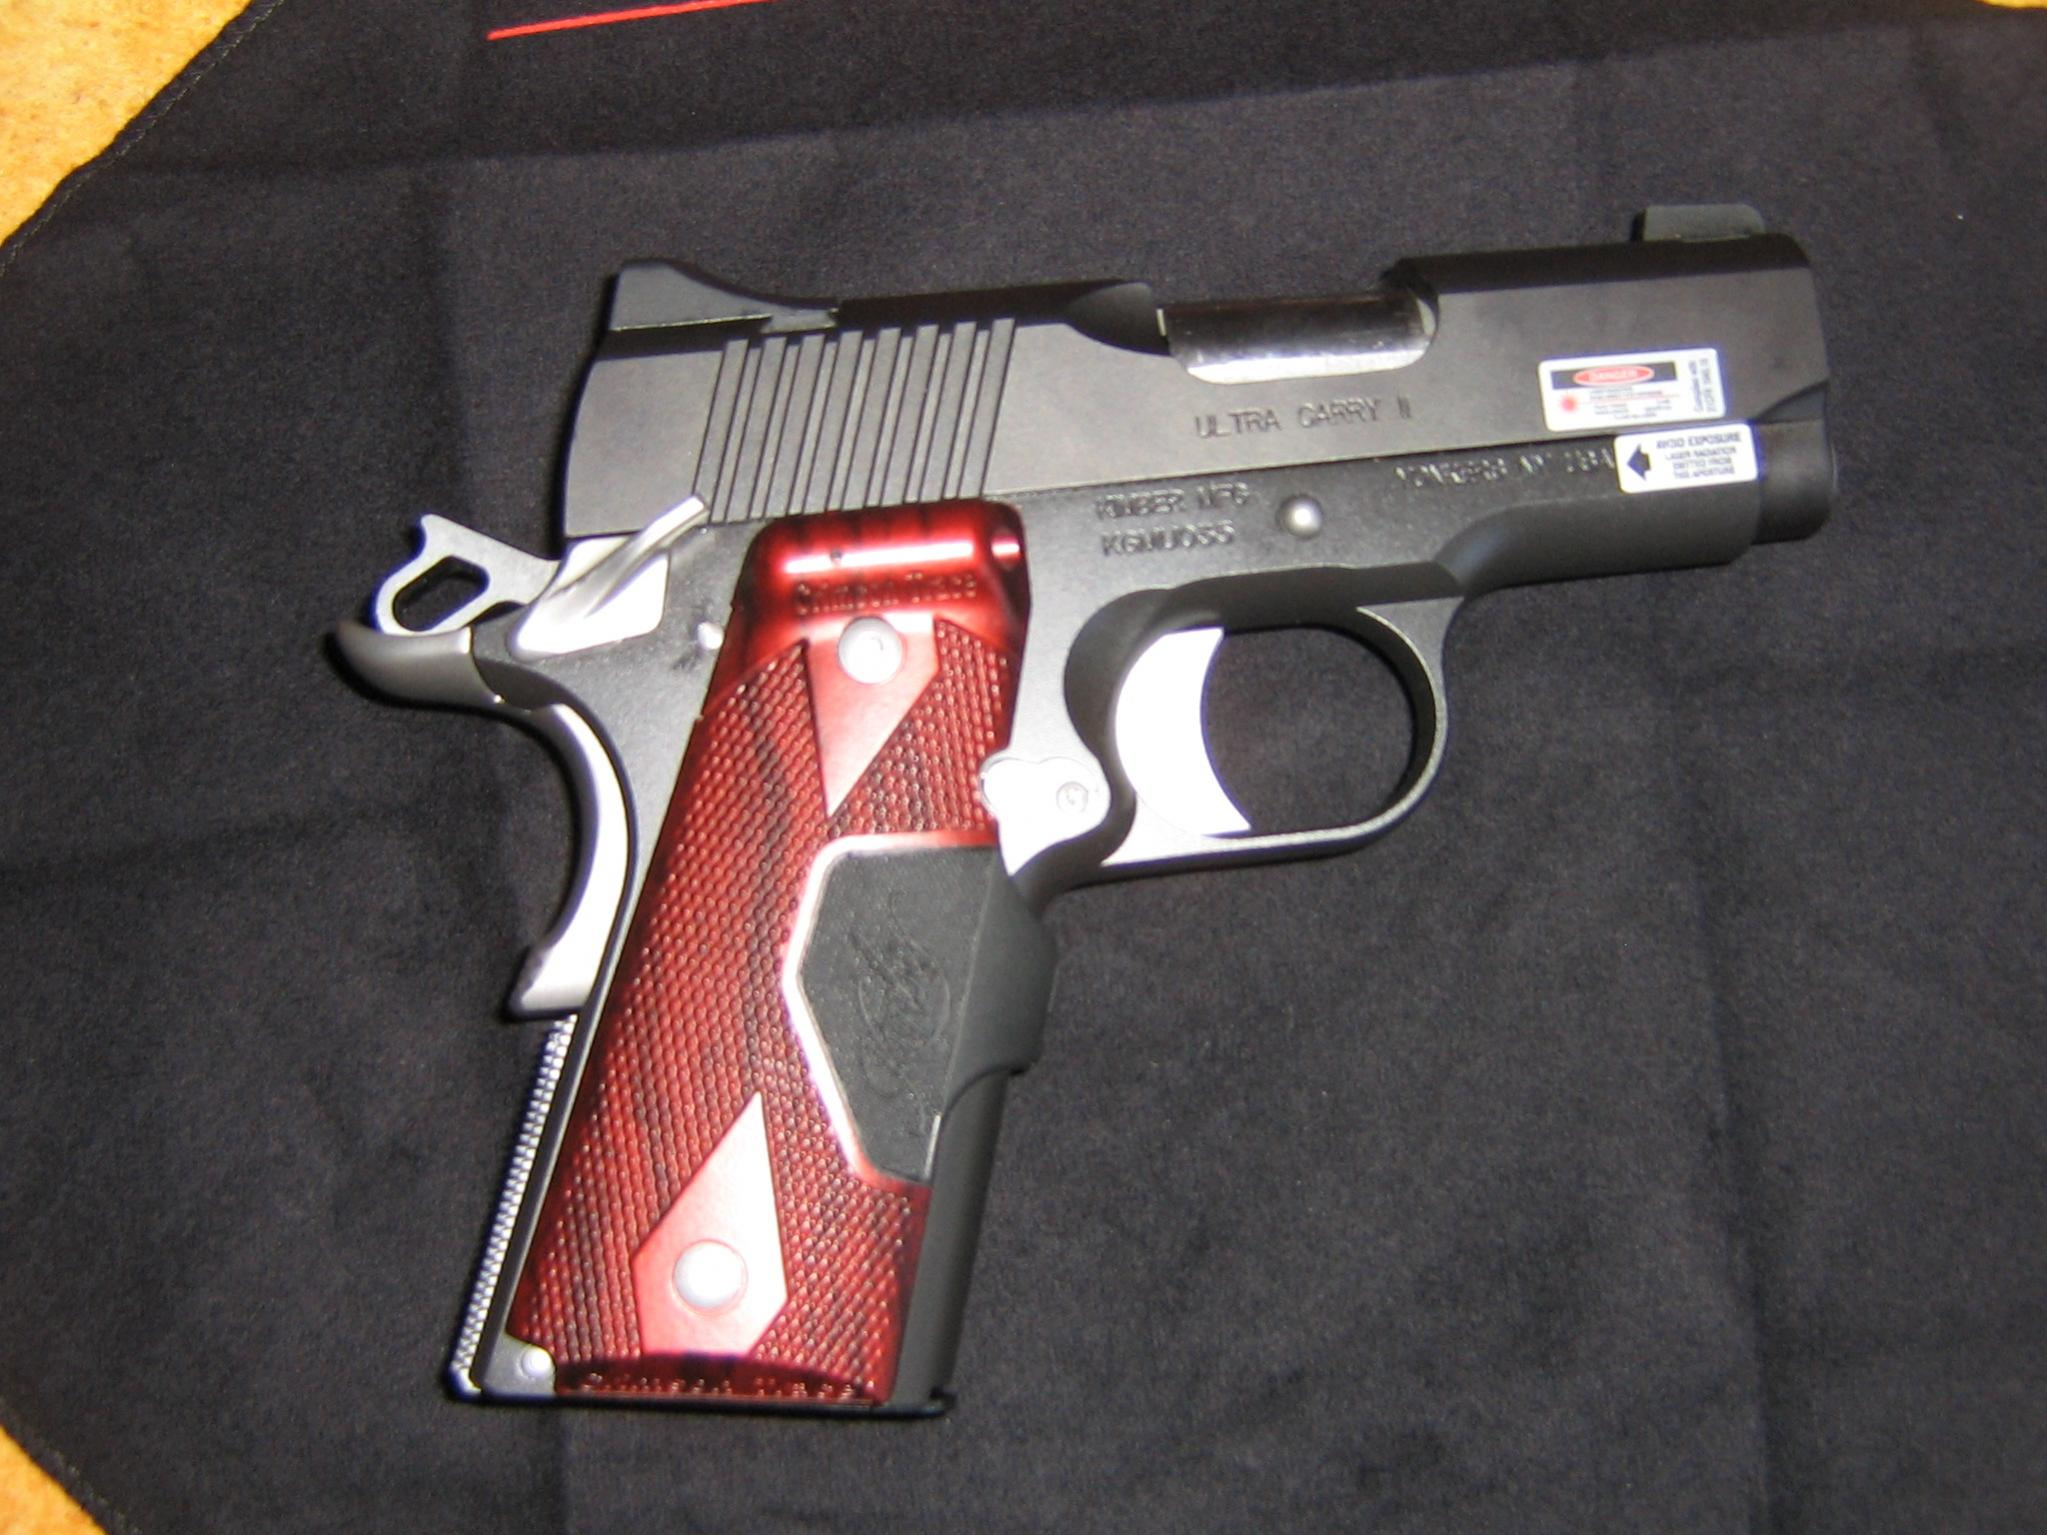 Pictures of my Kimber Ultra Carry II LG-img_0435.jpg